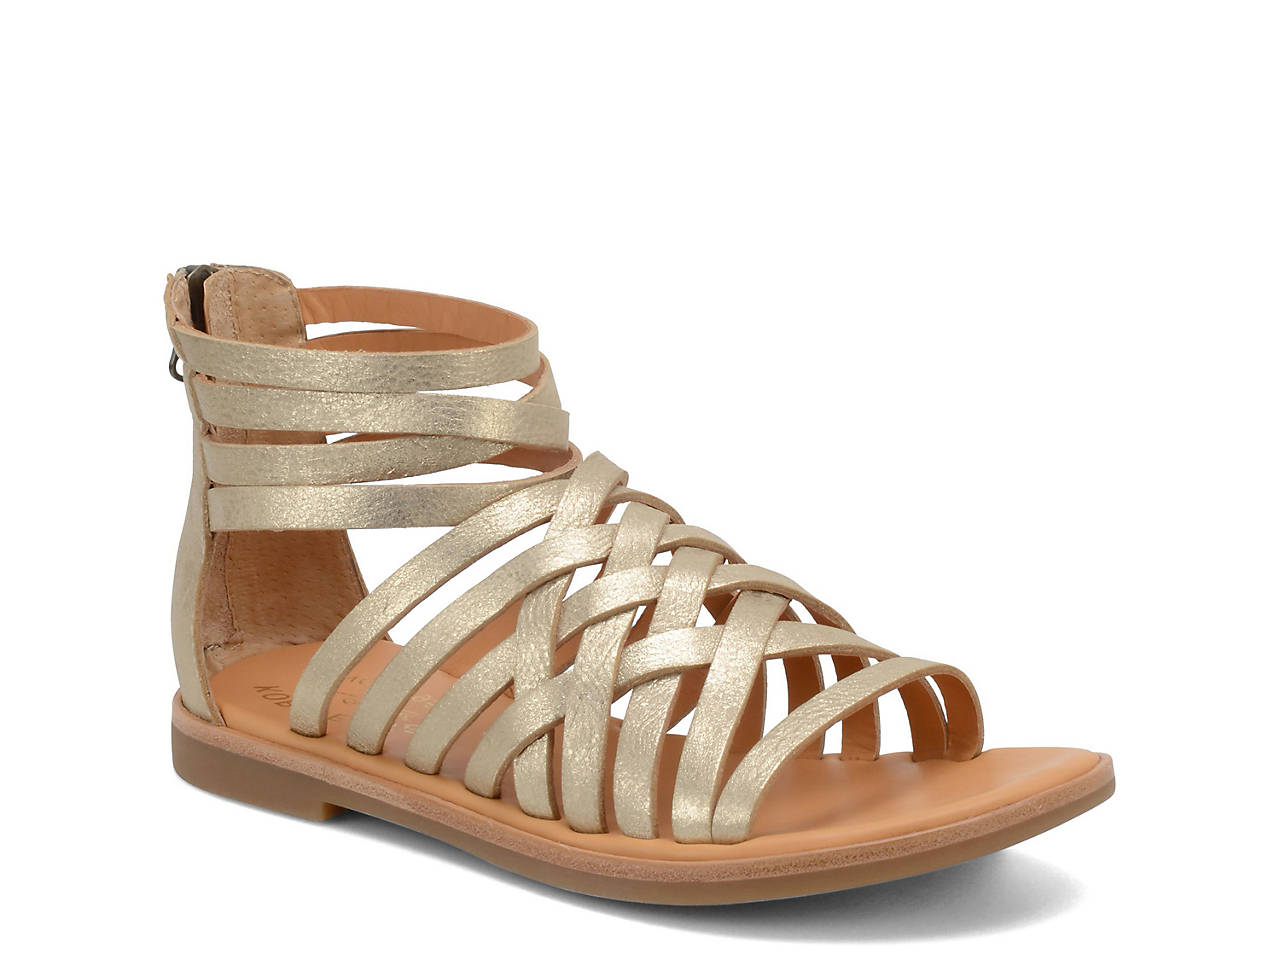 f1a72476381 Kork-Ease Palmyra Gladiator Sandal Women s Shoes